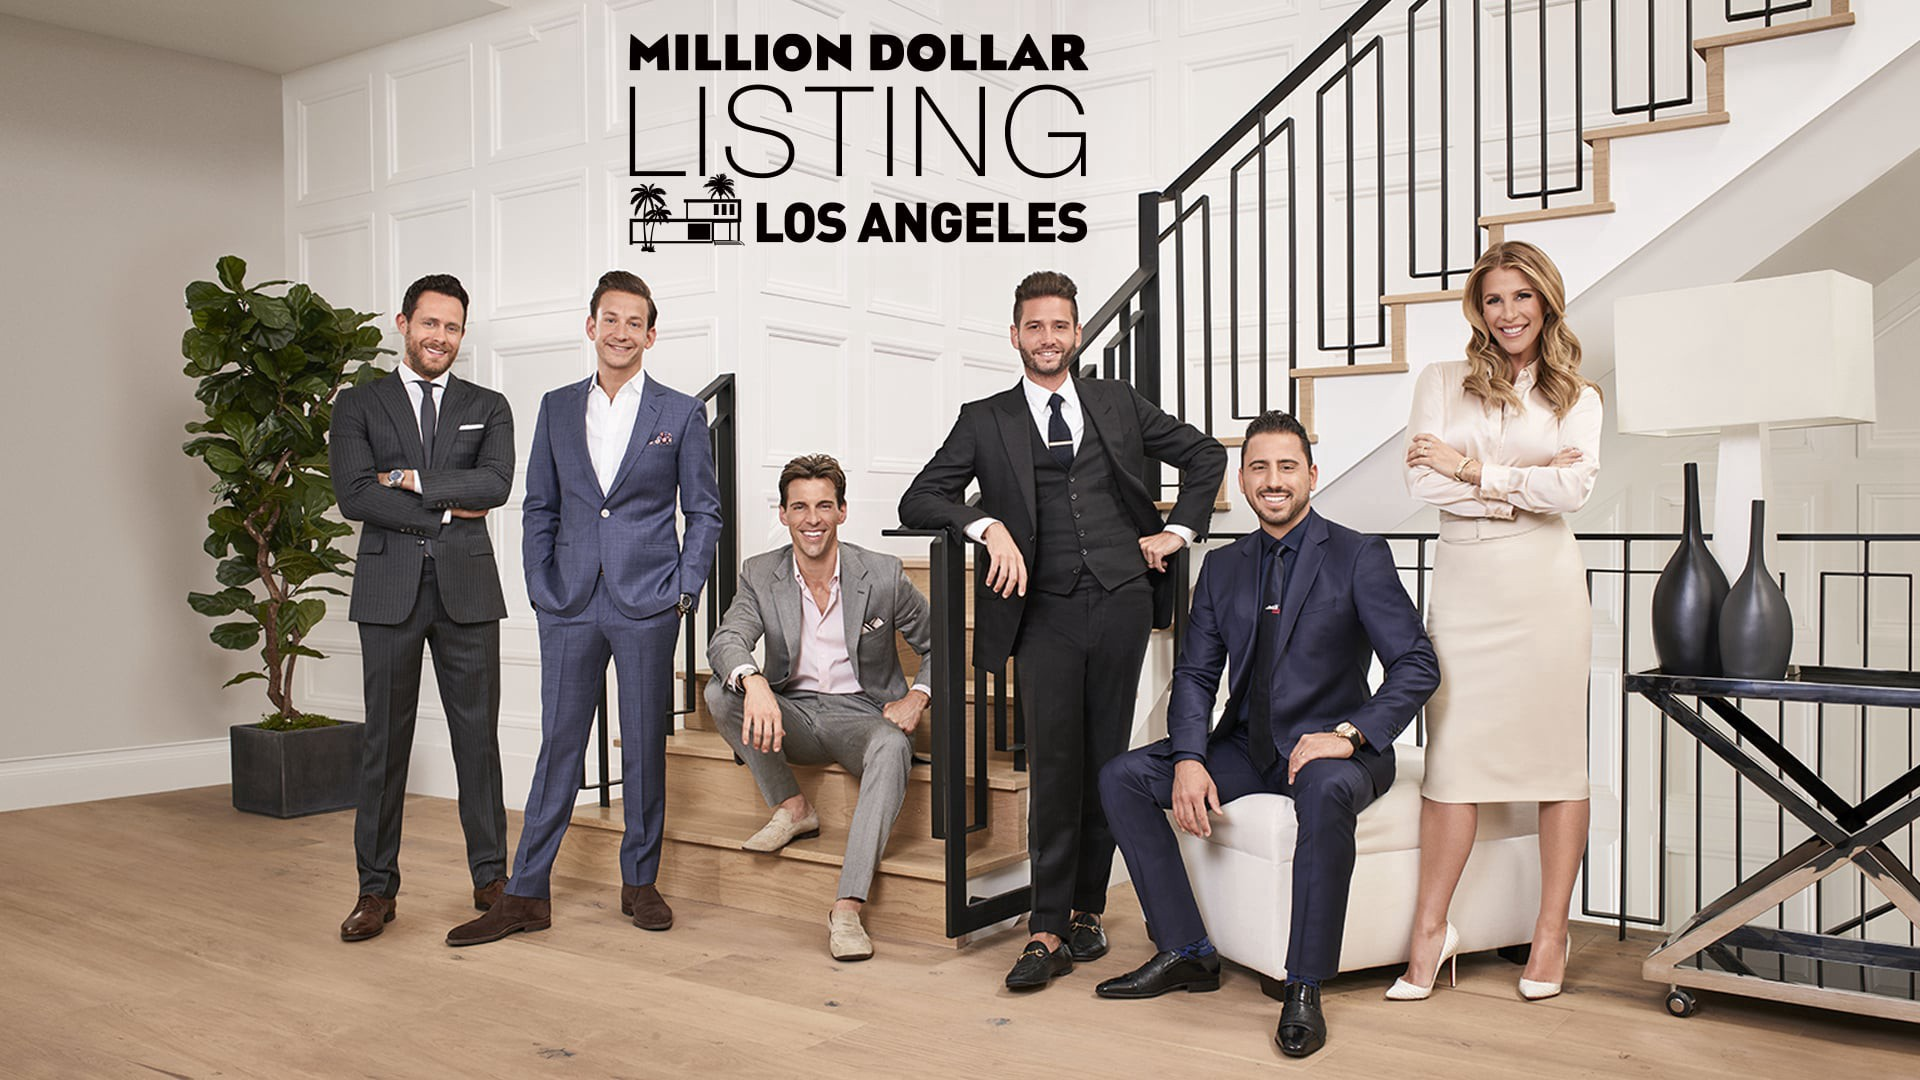 watch million dollar listing full episodes free